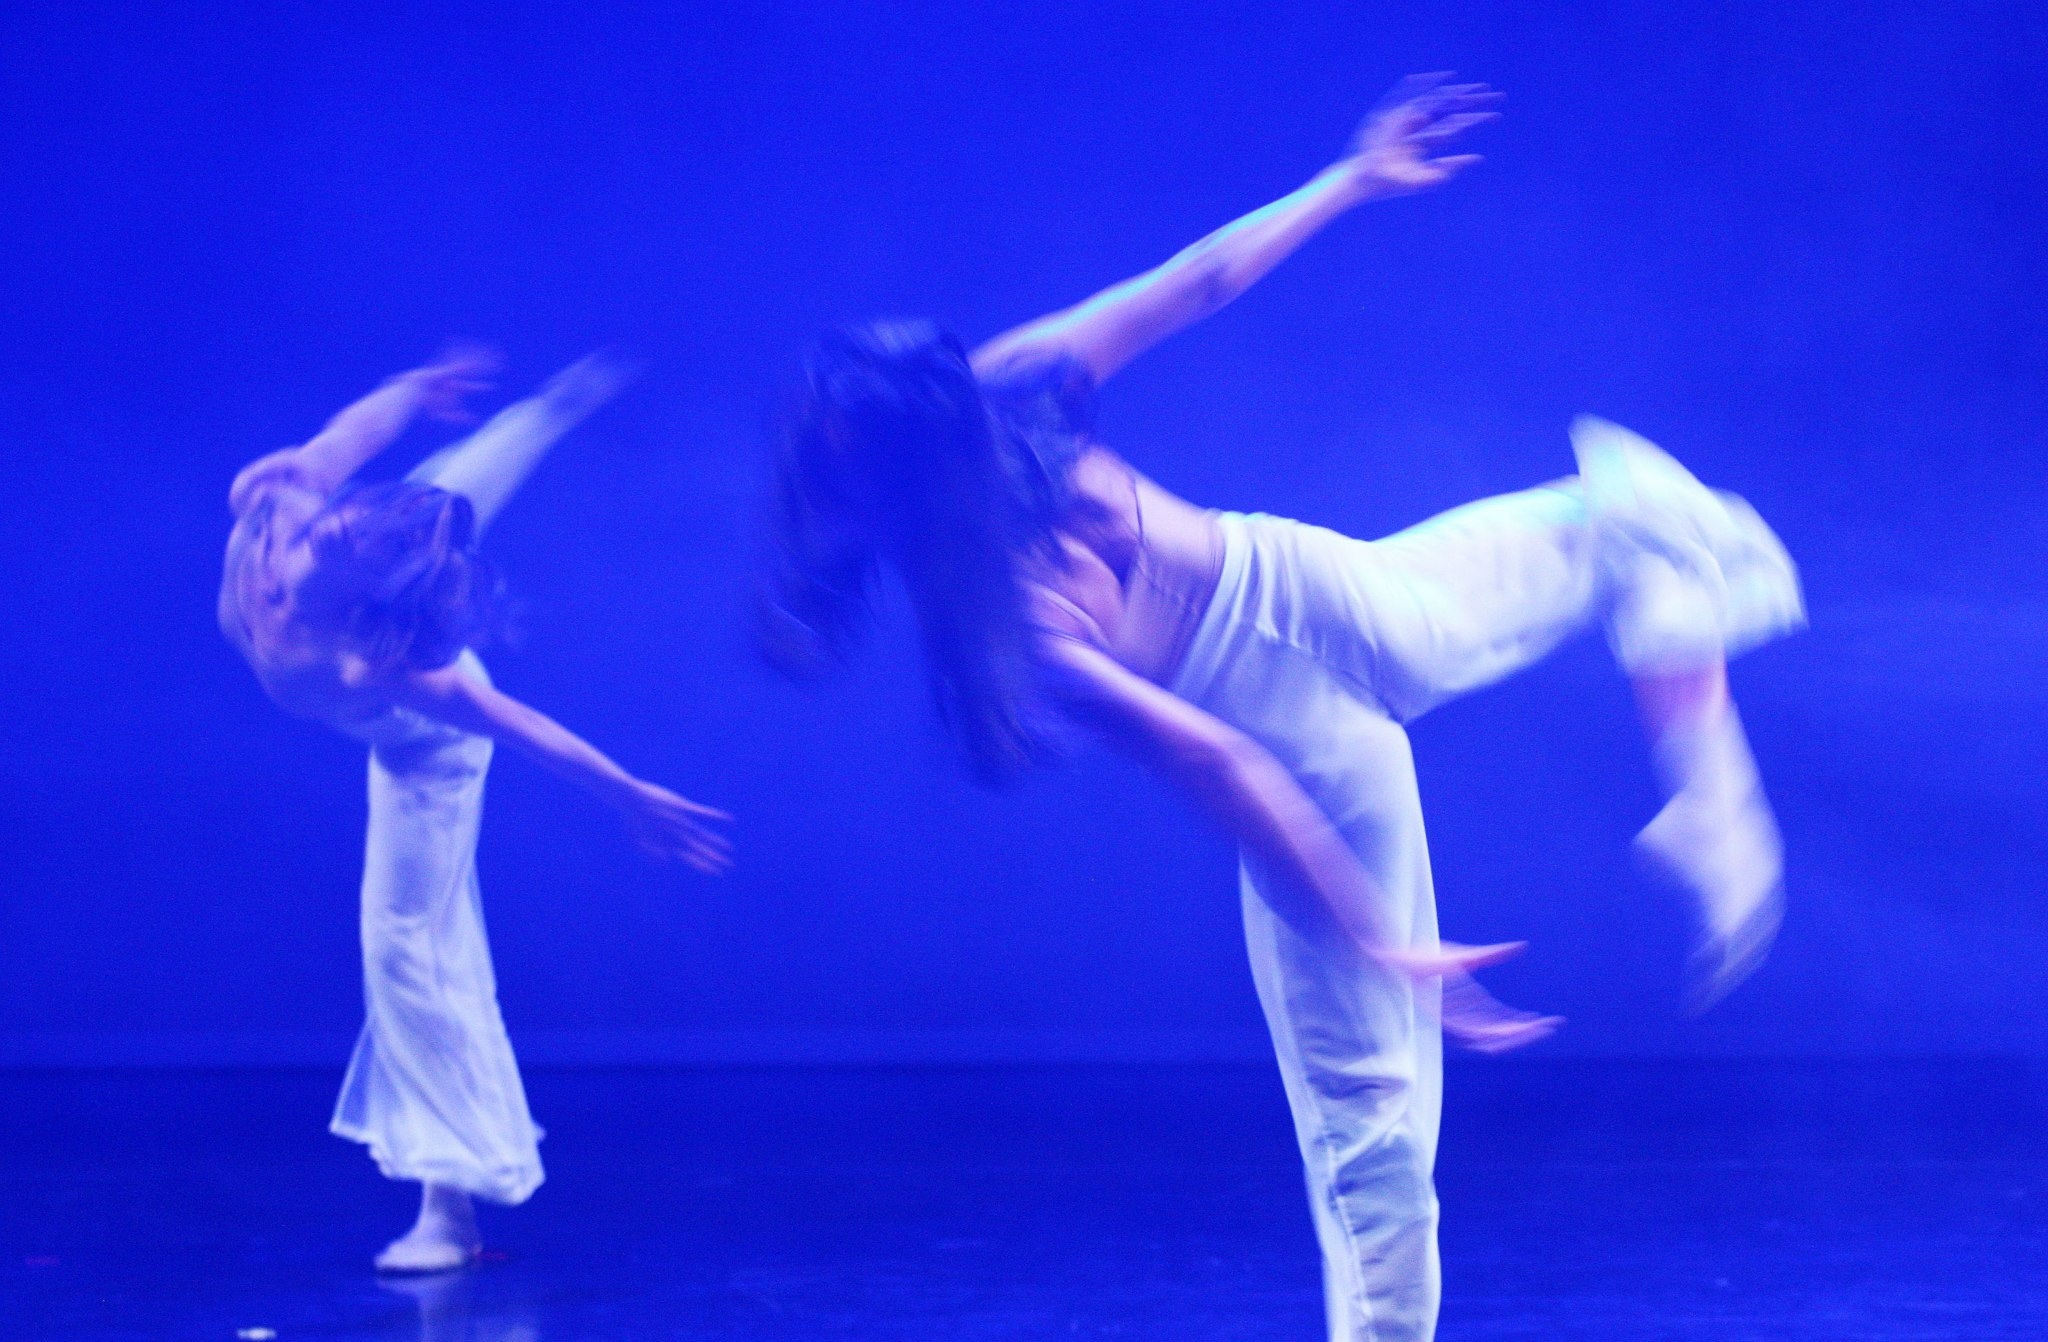 Multicolour - Generale Oost/ Introdans